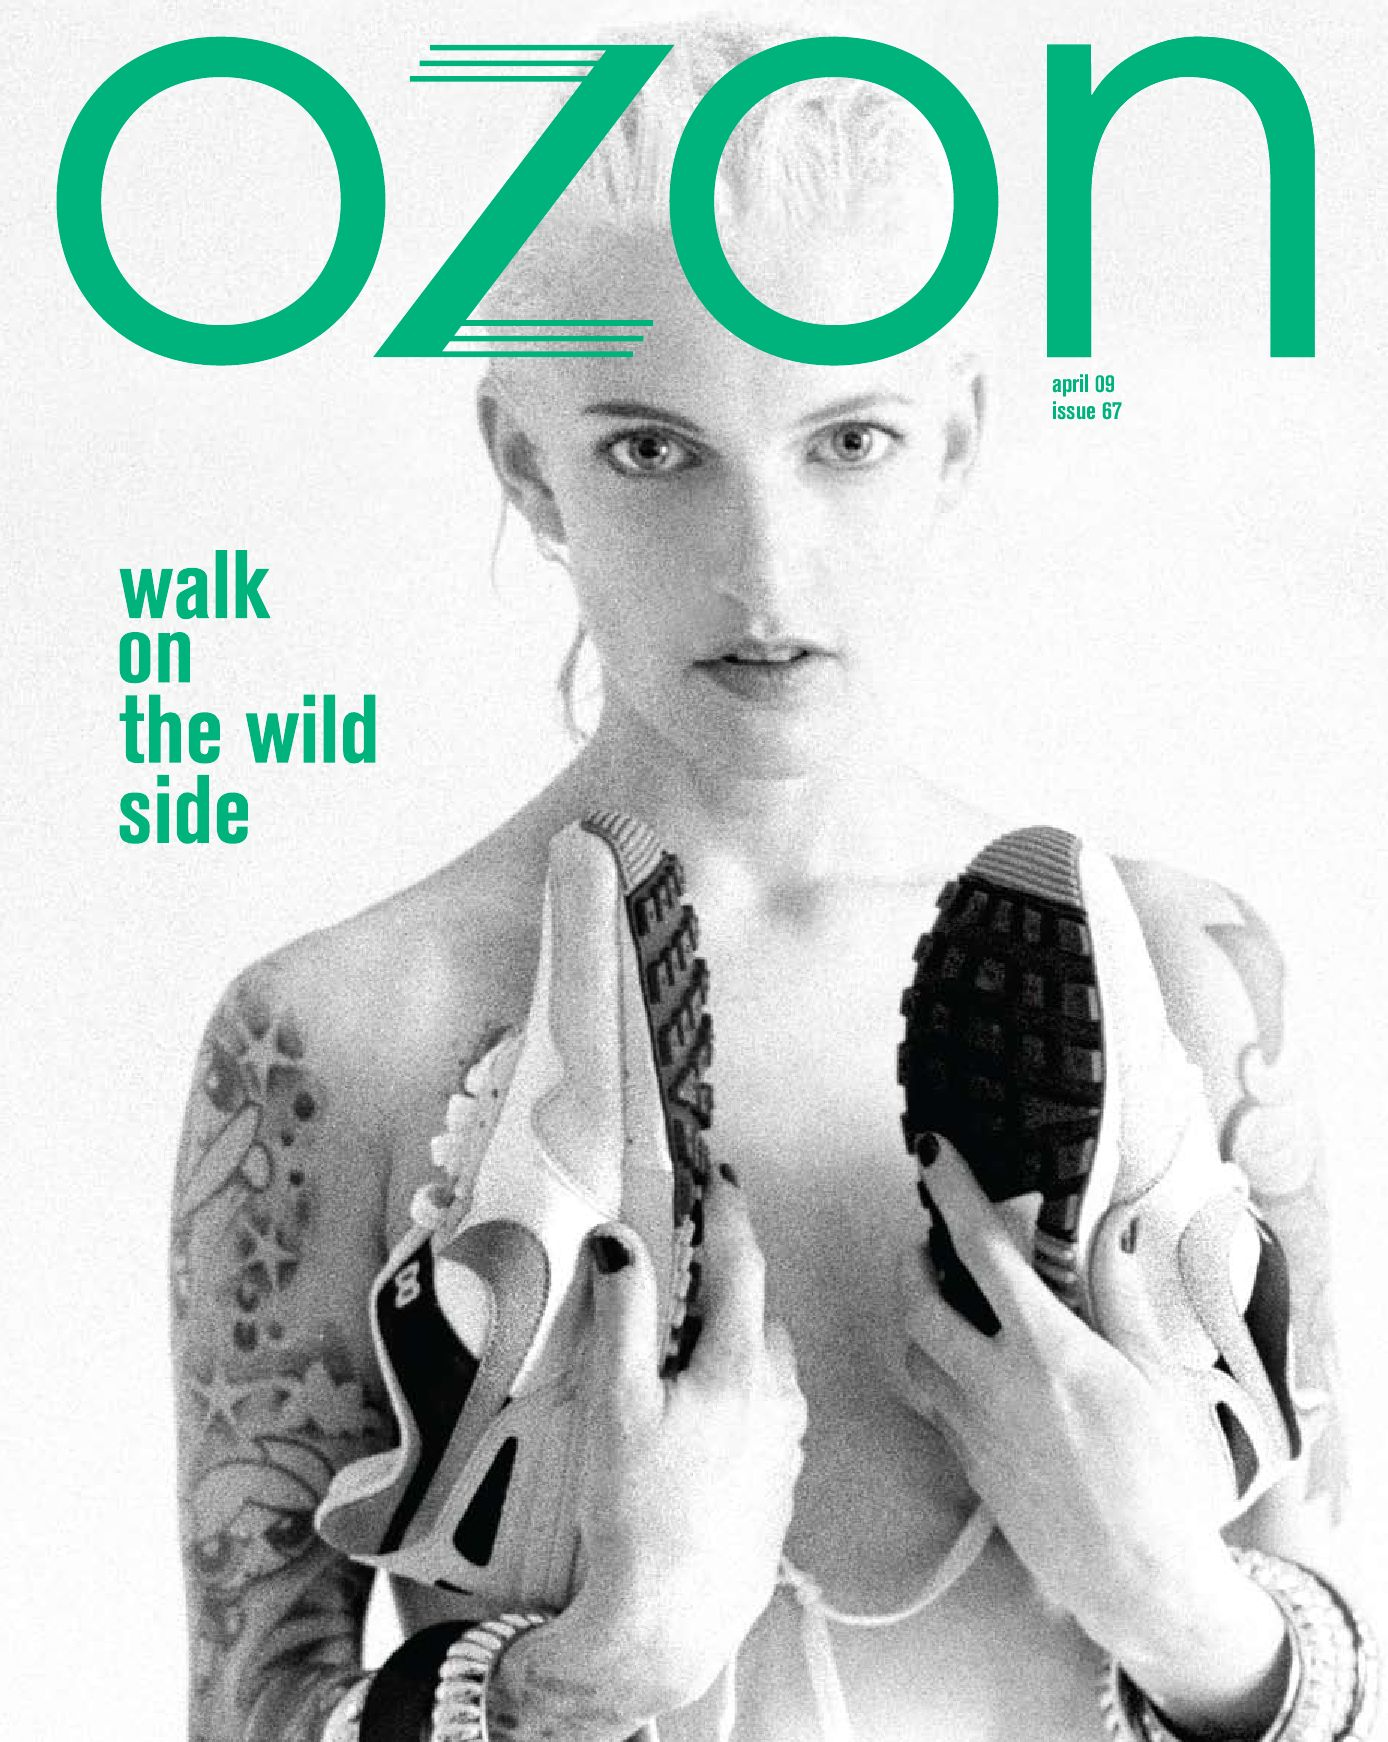 f75f559647f5 ozon april issue | walk on the wild side by OZON Magazine - issuu